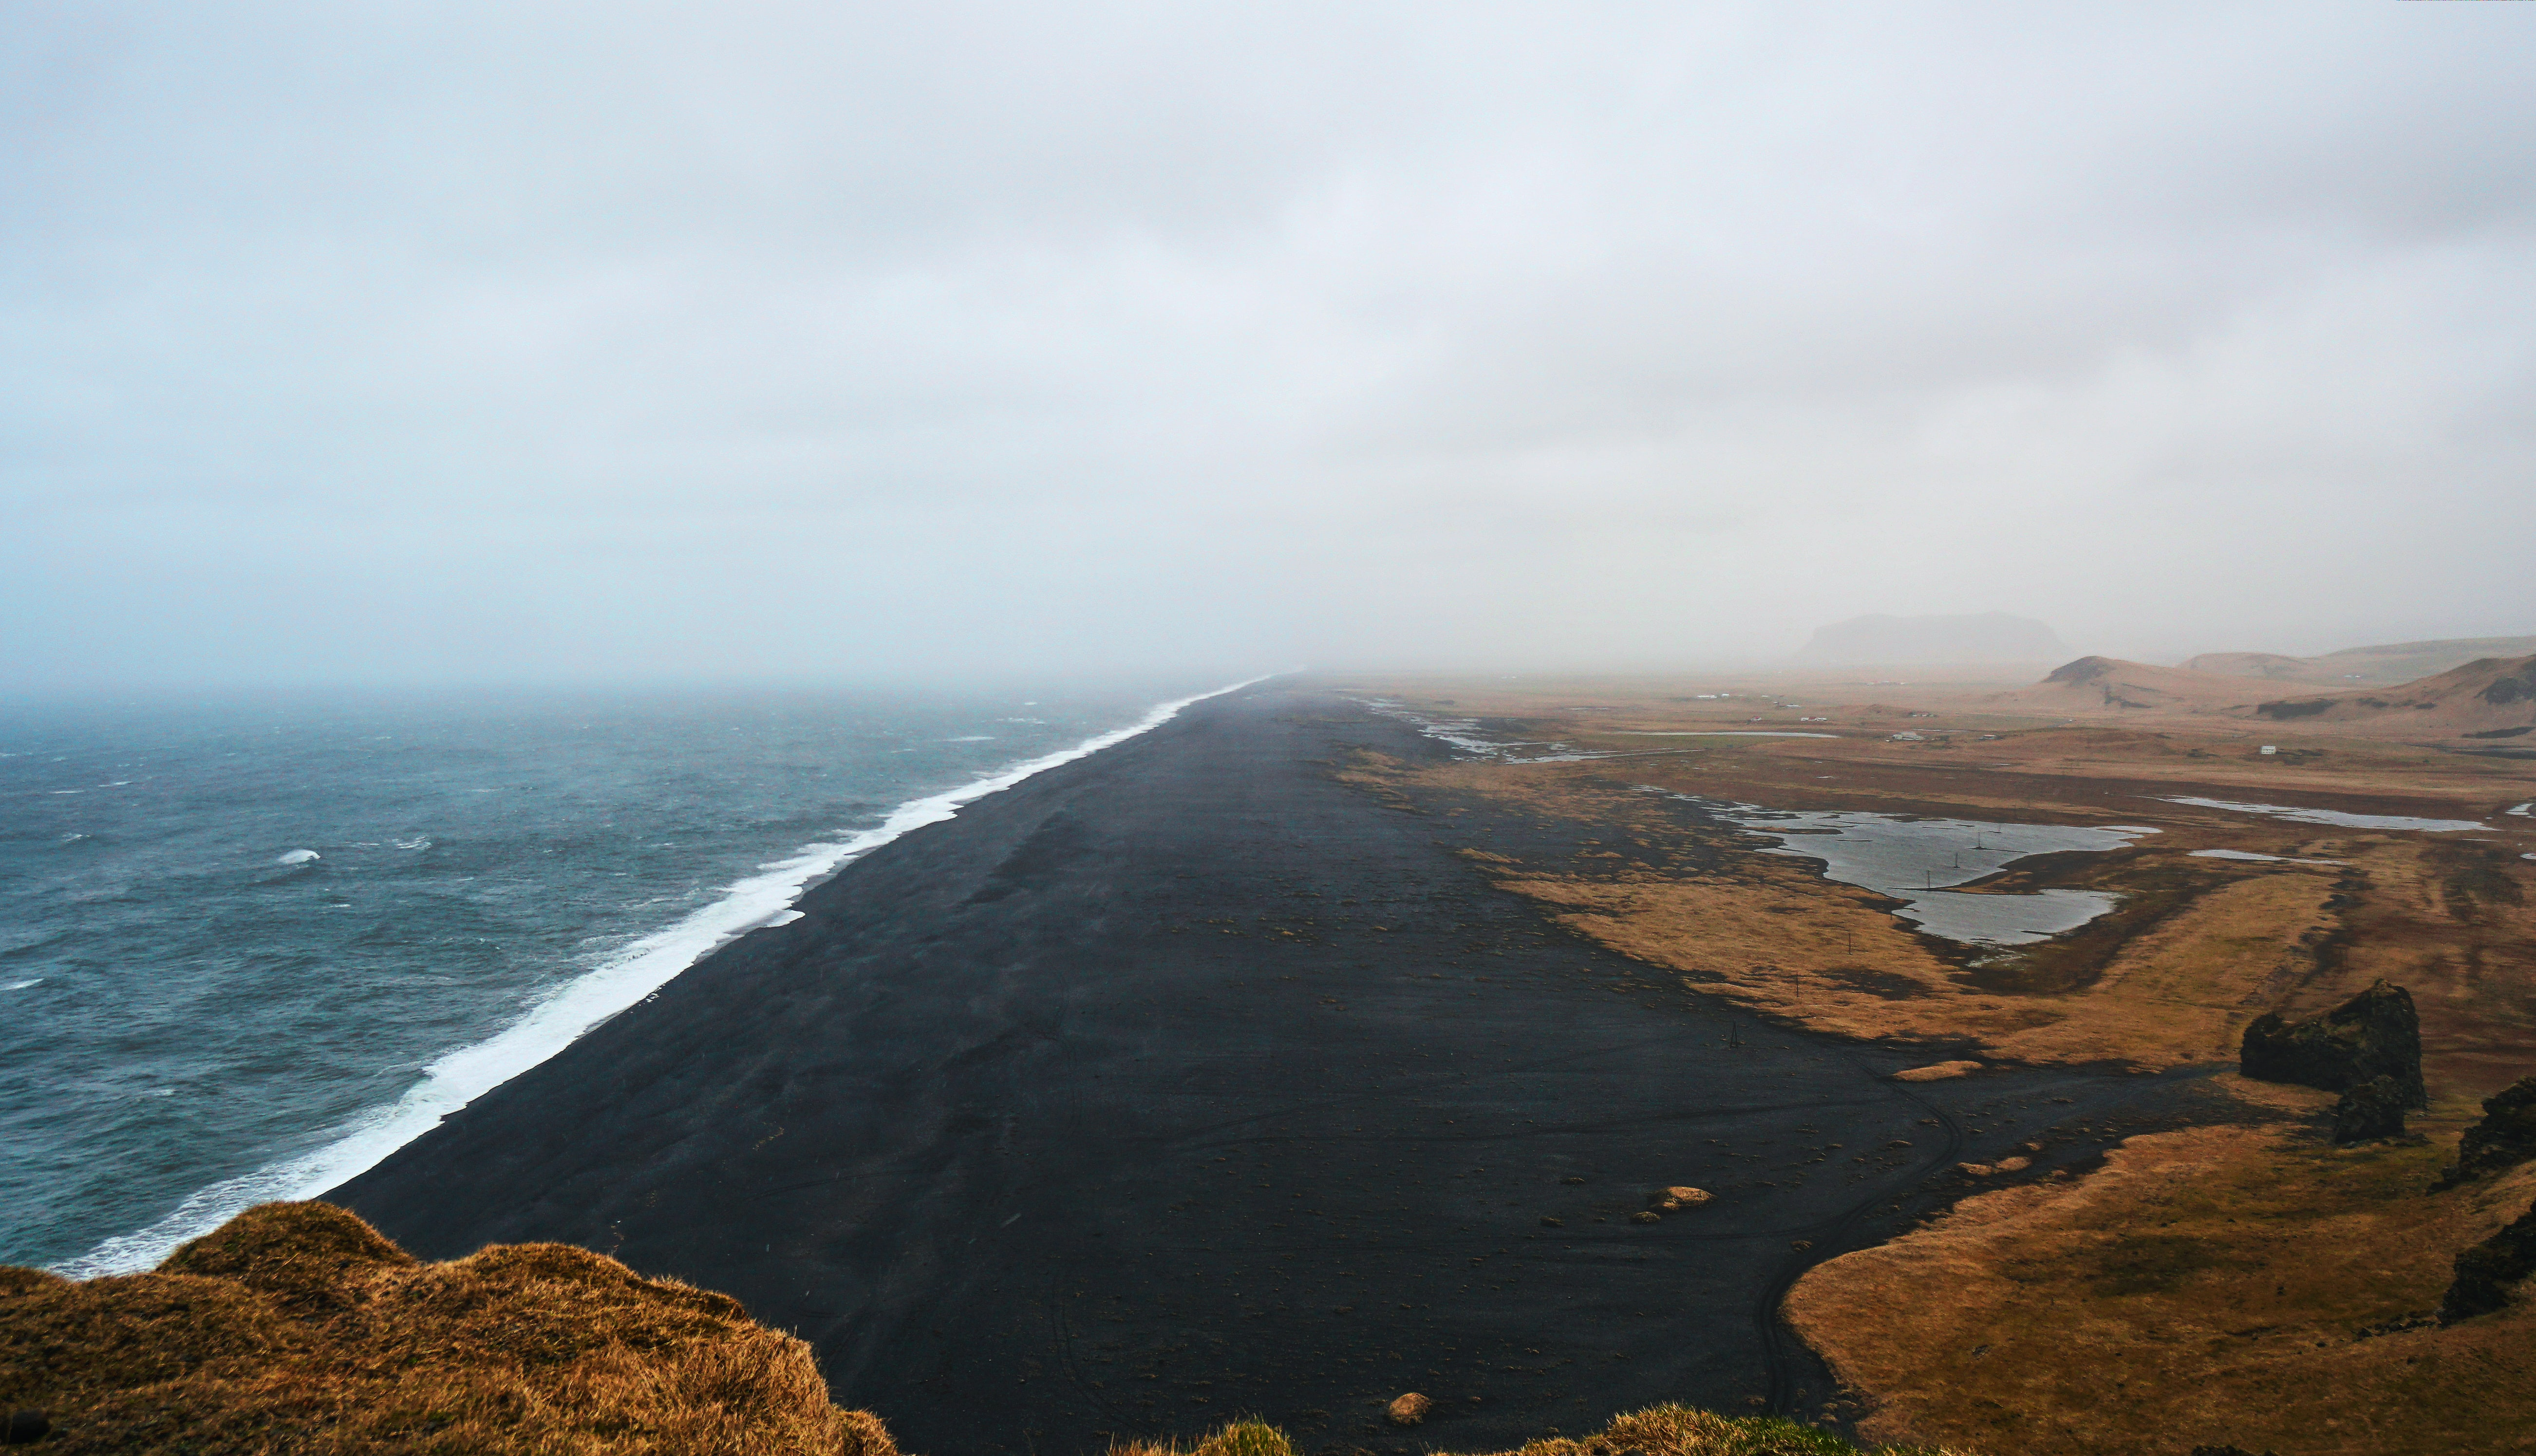 Black sand beach by the ocean on a cloudy day in Iceland